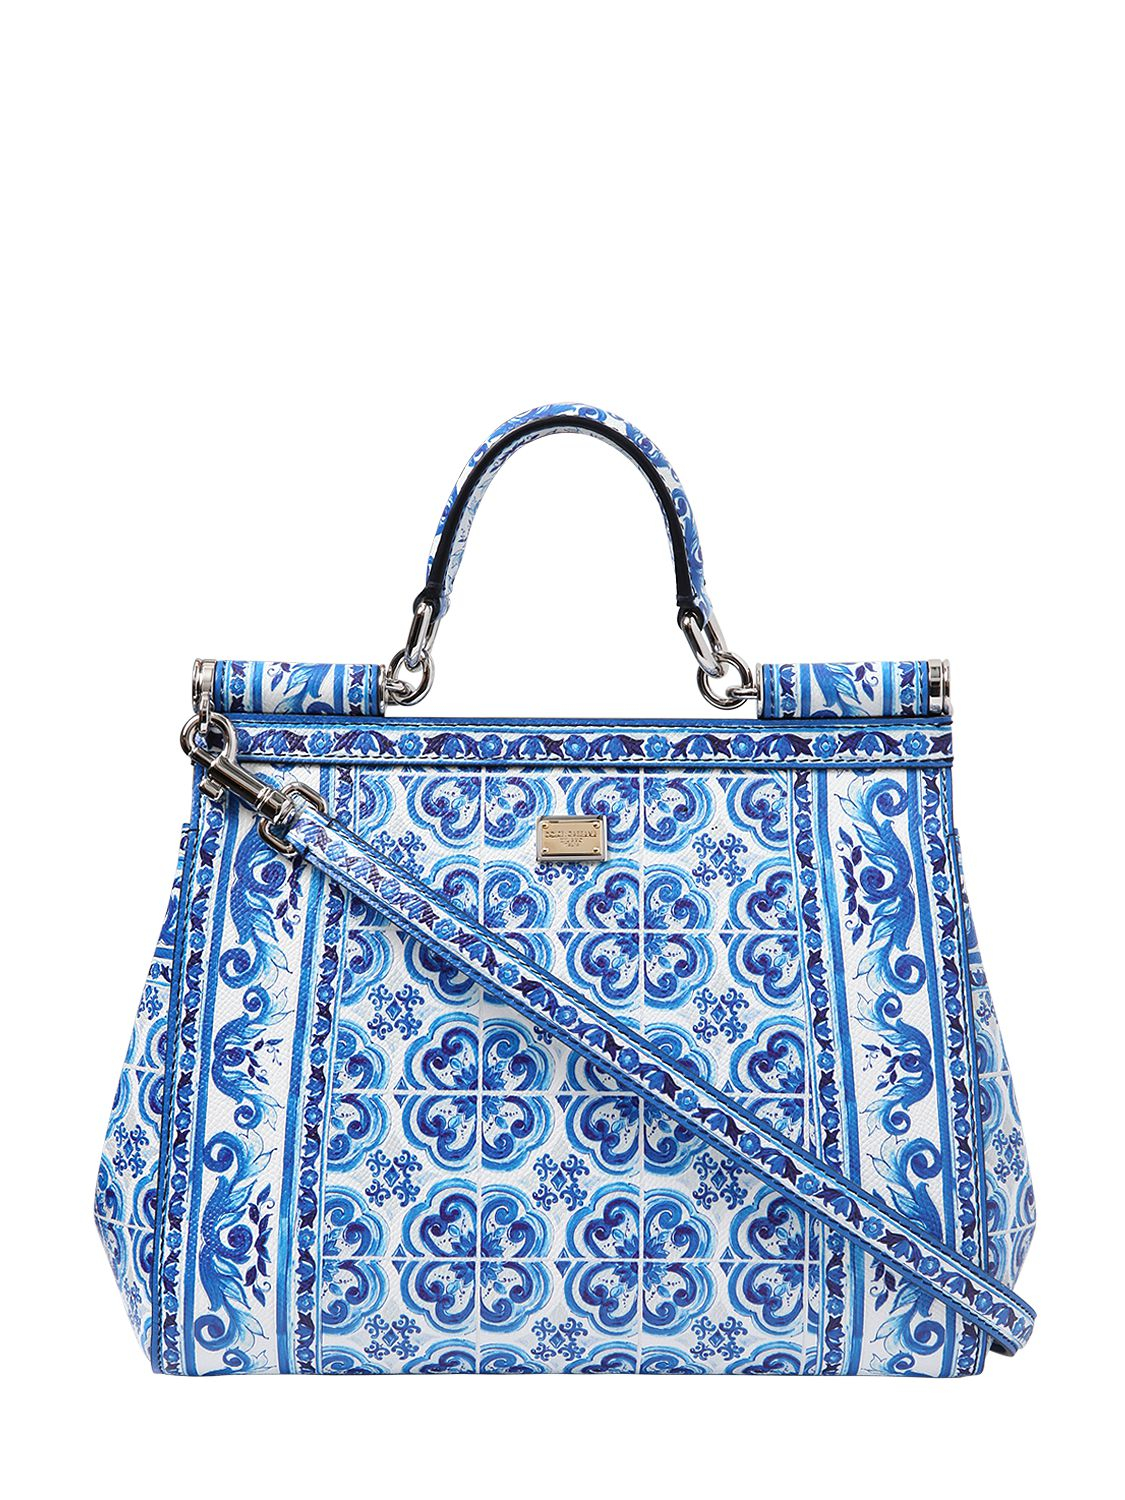 Lyst - Dolce   Gabbana Medium Sicily Dauphine Leather Bag in Blue 0fe9e7dc36